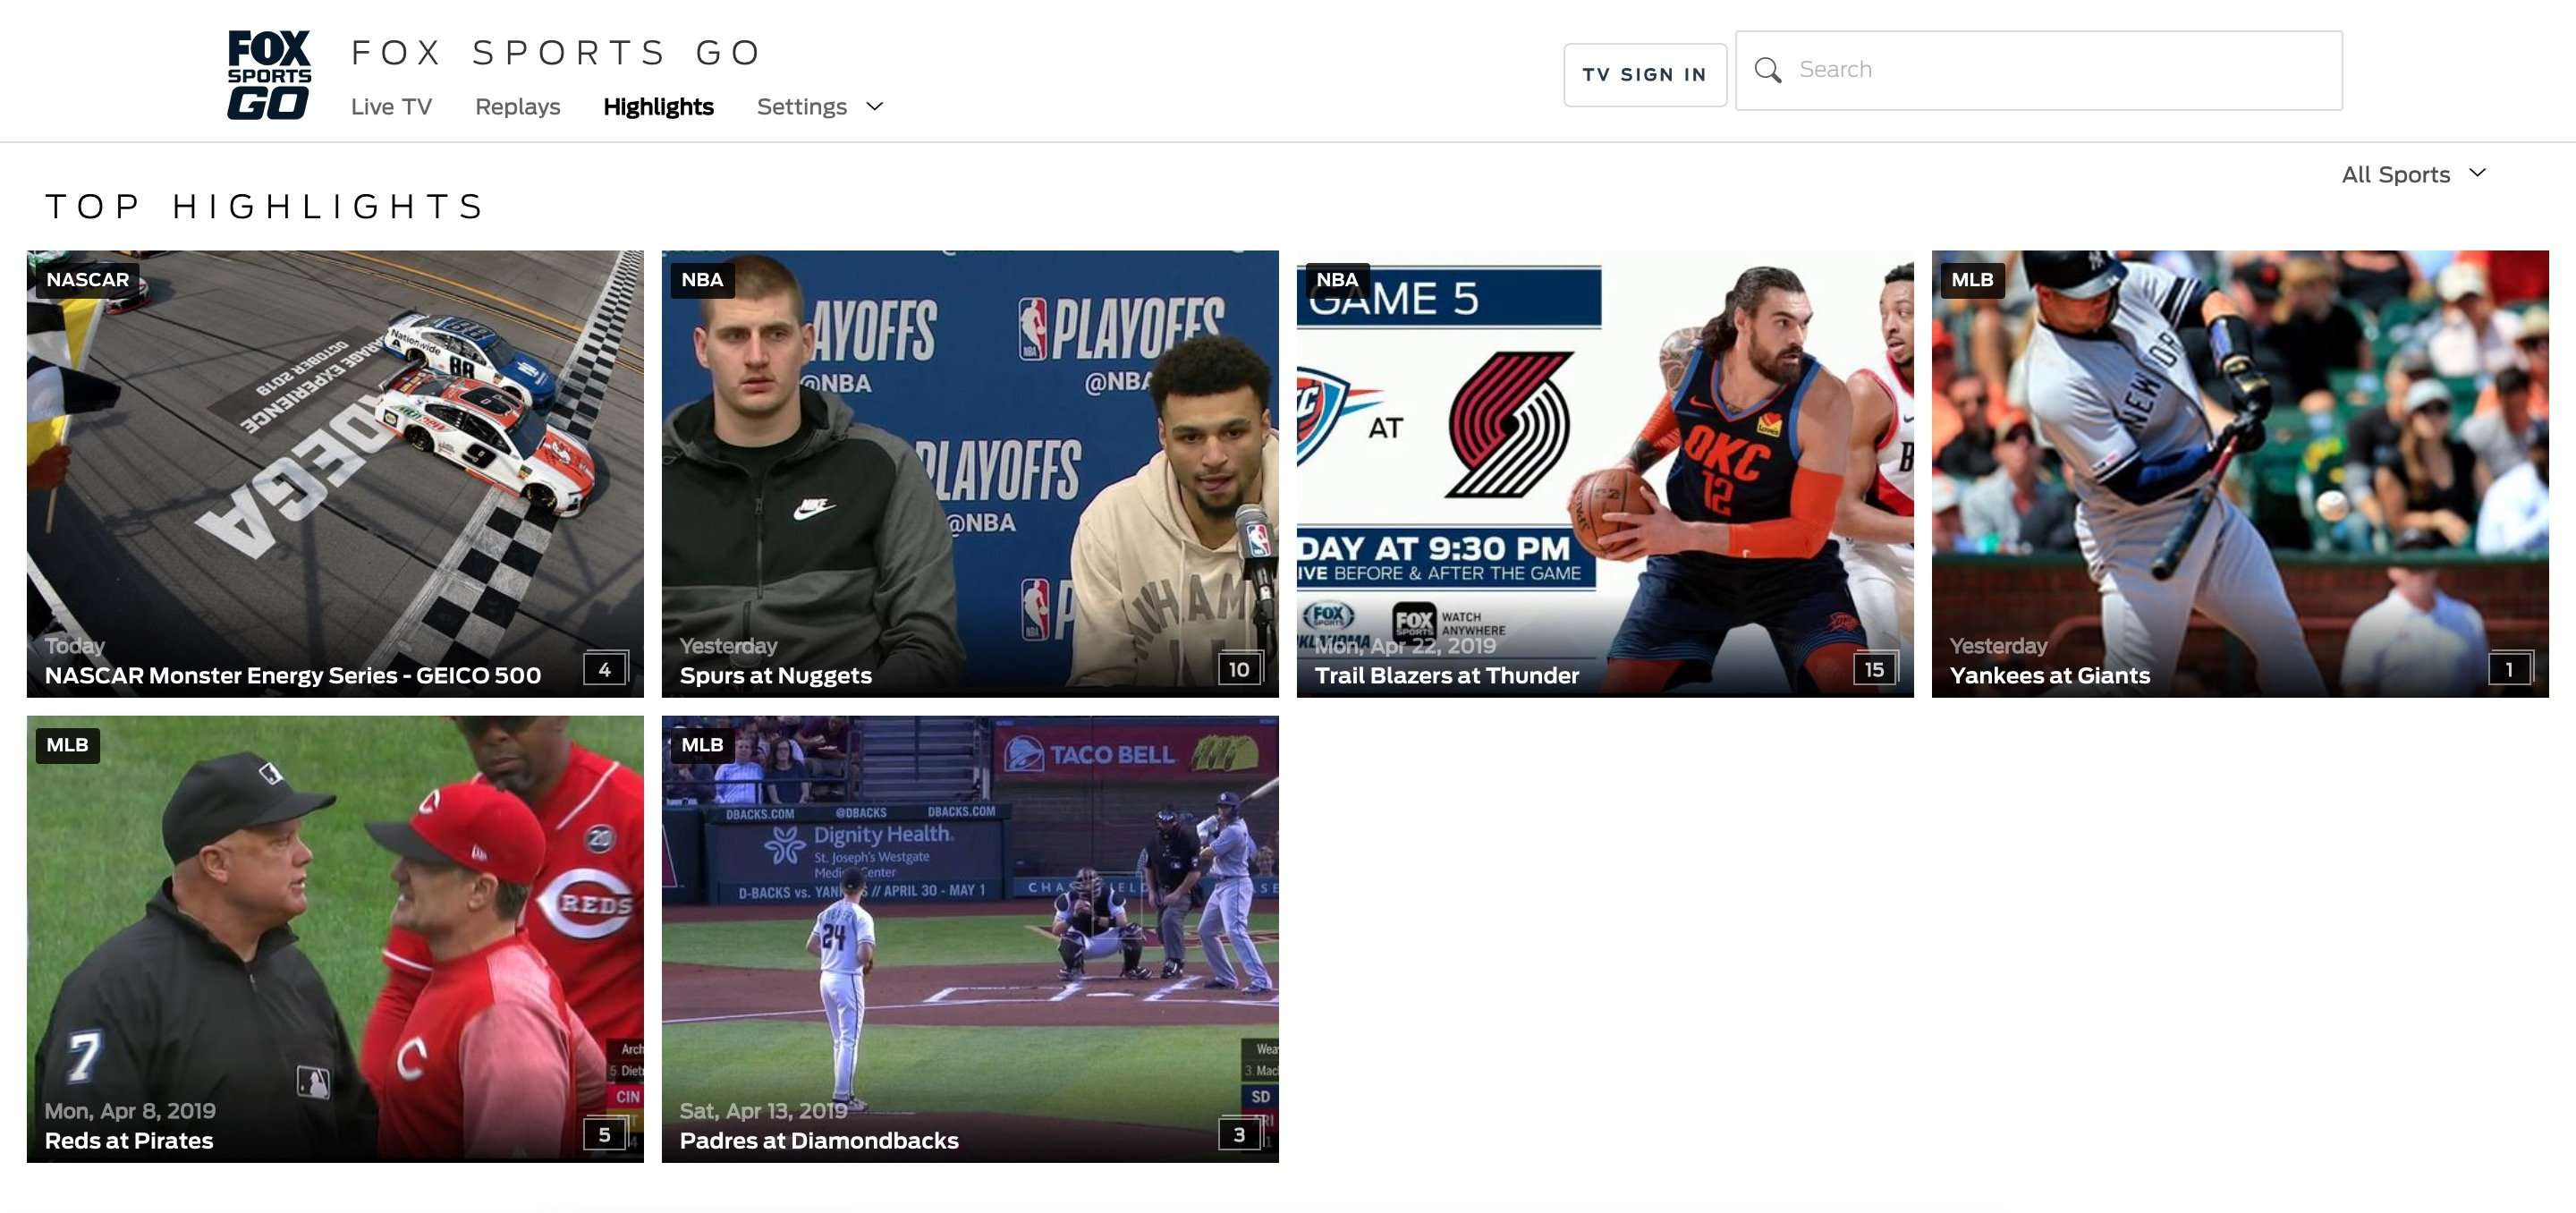 Fox Sports Go not working with a VPN